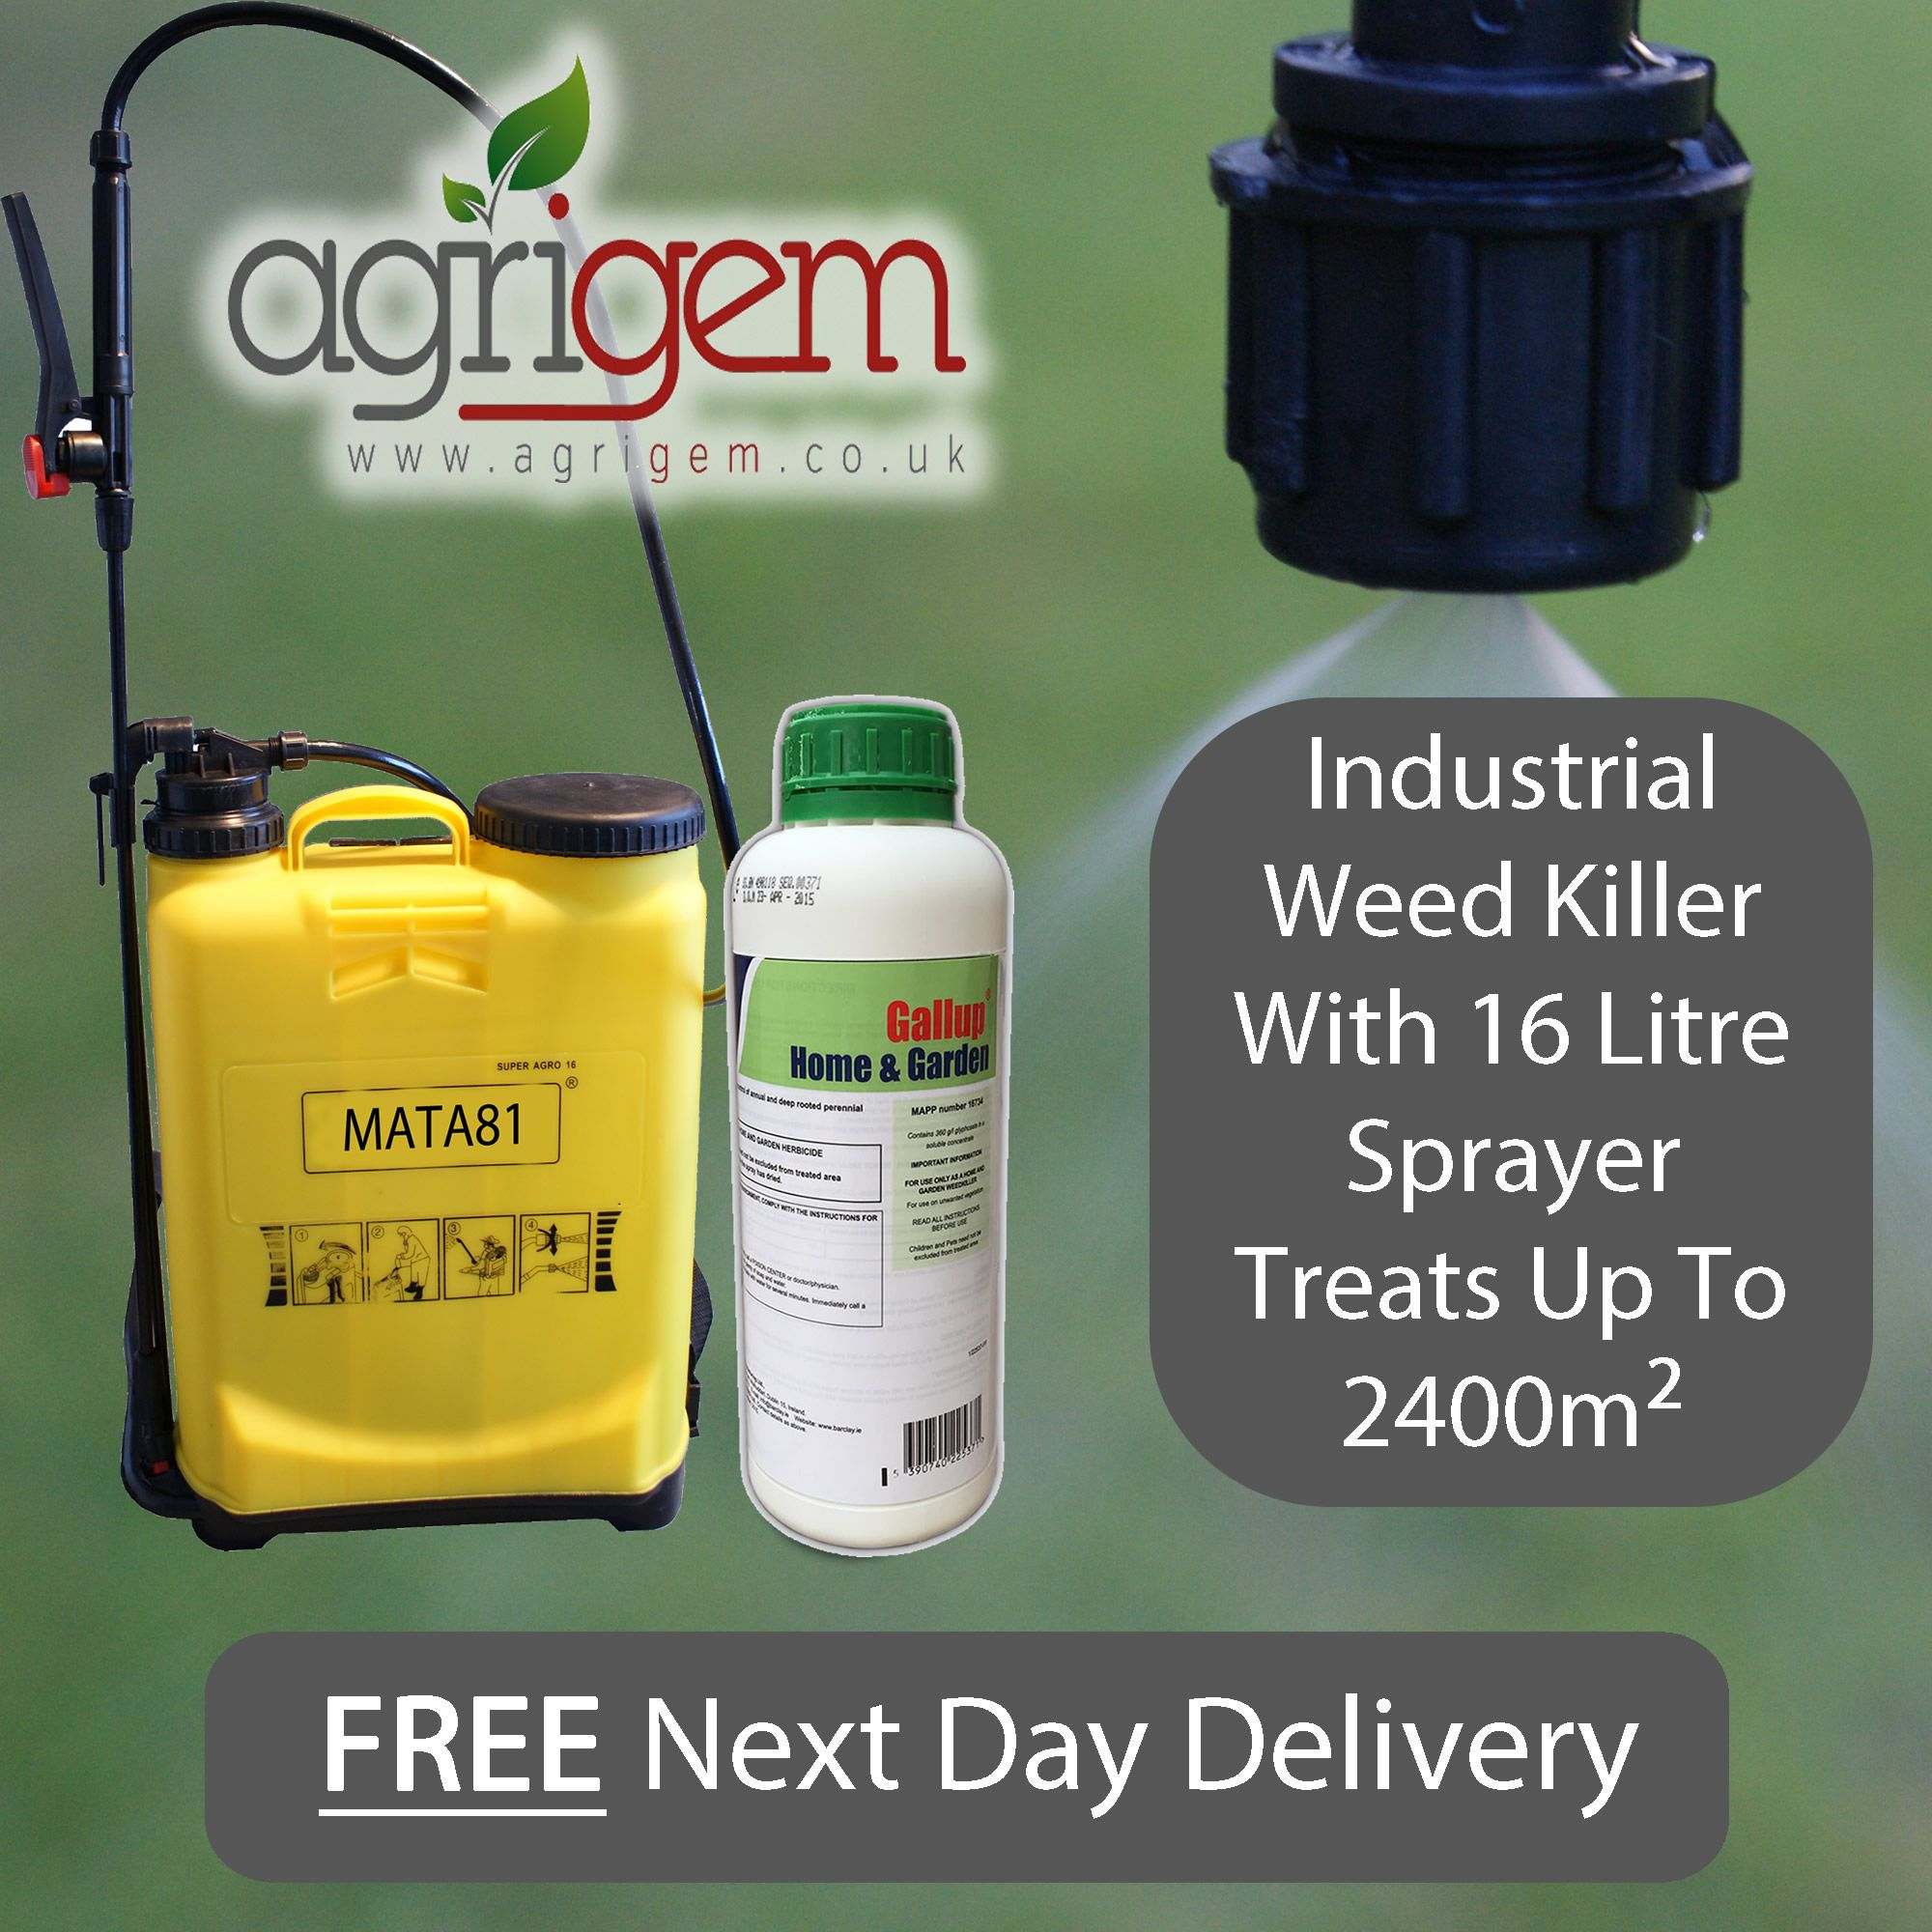 knapsack sprayer 20l with gallup extra strong spray weed. Black Bedroom Furniture Sets. Home Design Ideas